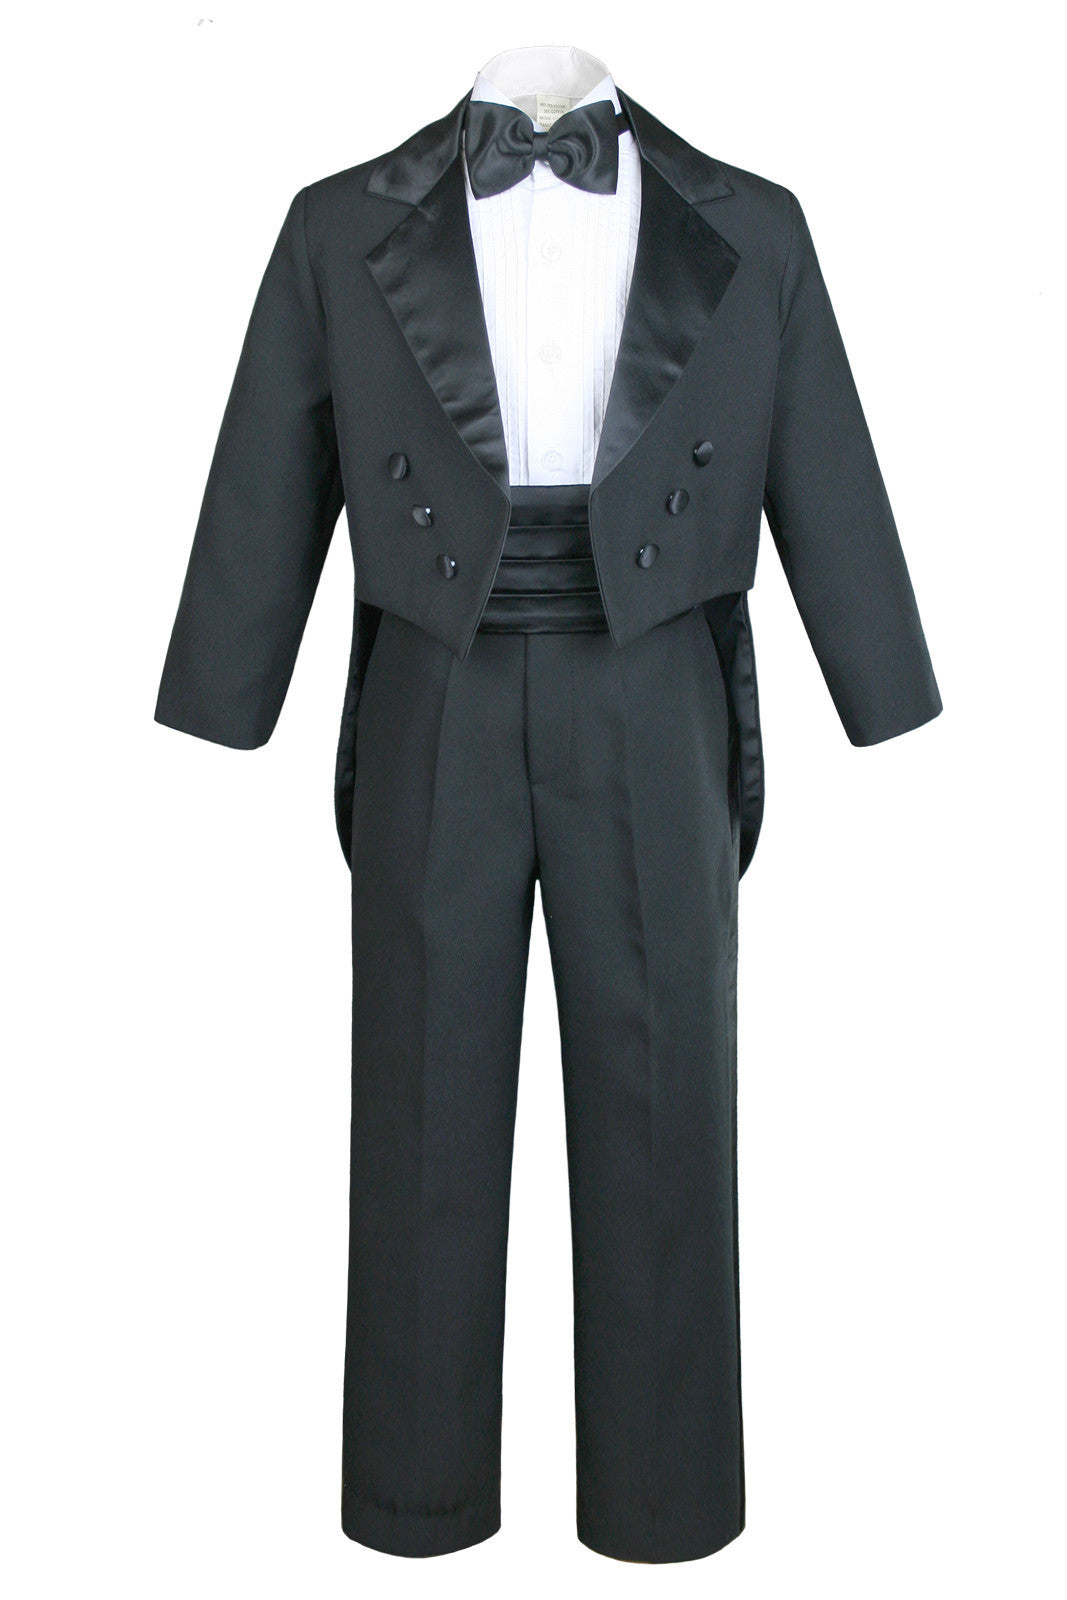 Unotux 6pc Baby Toddler Boy Teen Formal Party Suit w//Satin Bow tie Medium Gray Sm-20